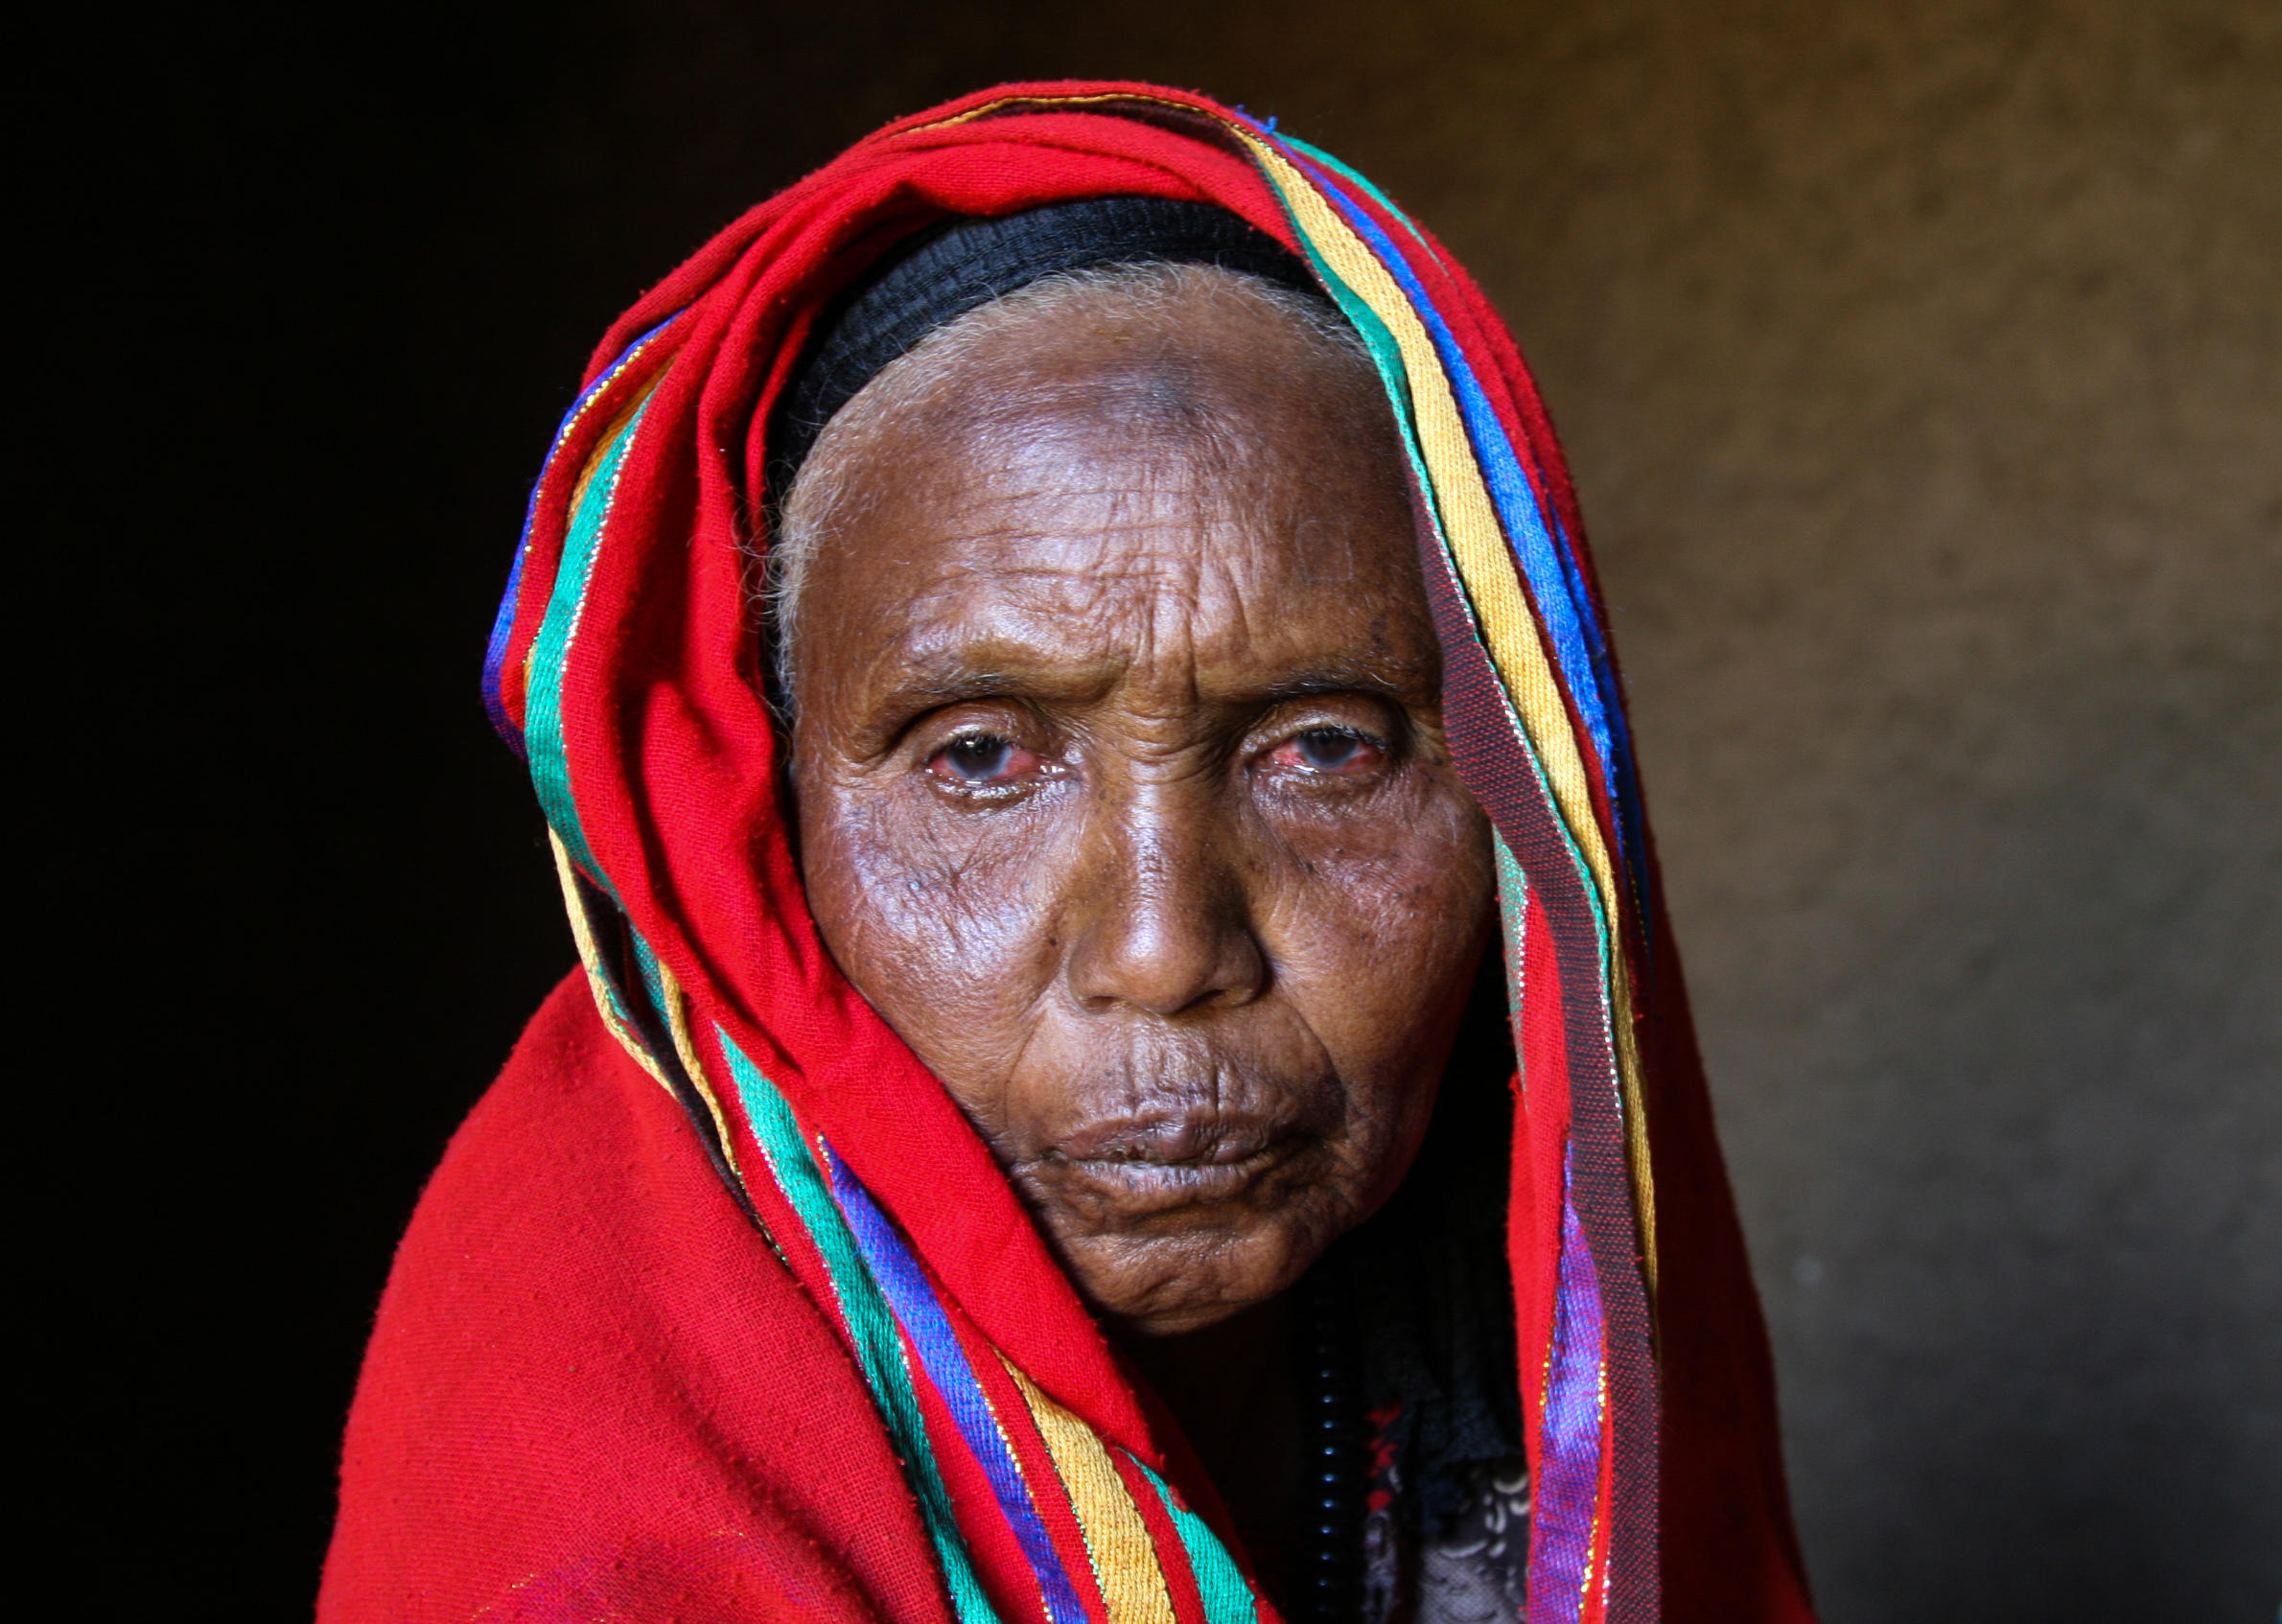 science can blindness goes blinds in has cause woman her cataracts surgery for from removed cataract enlarge contact gettyimages lenses eye